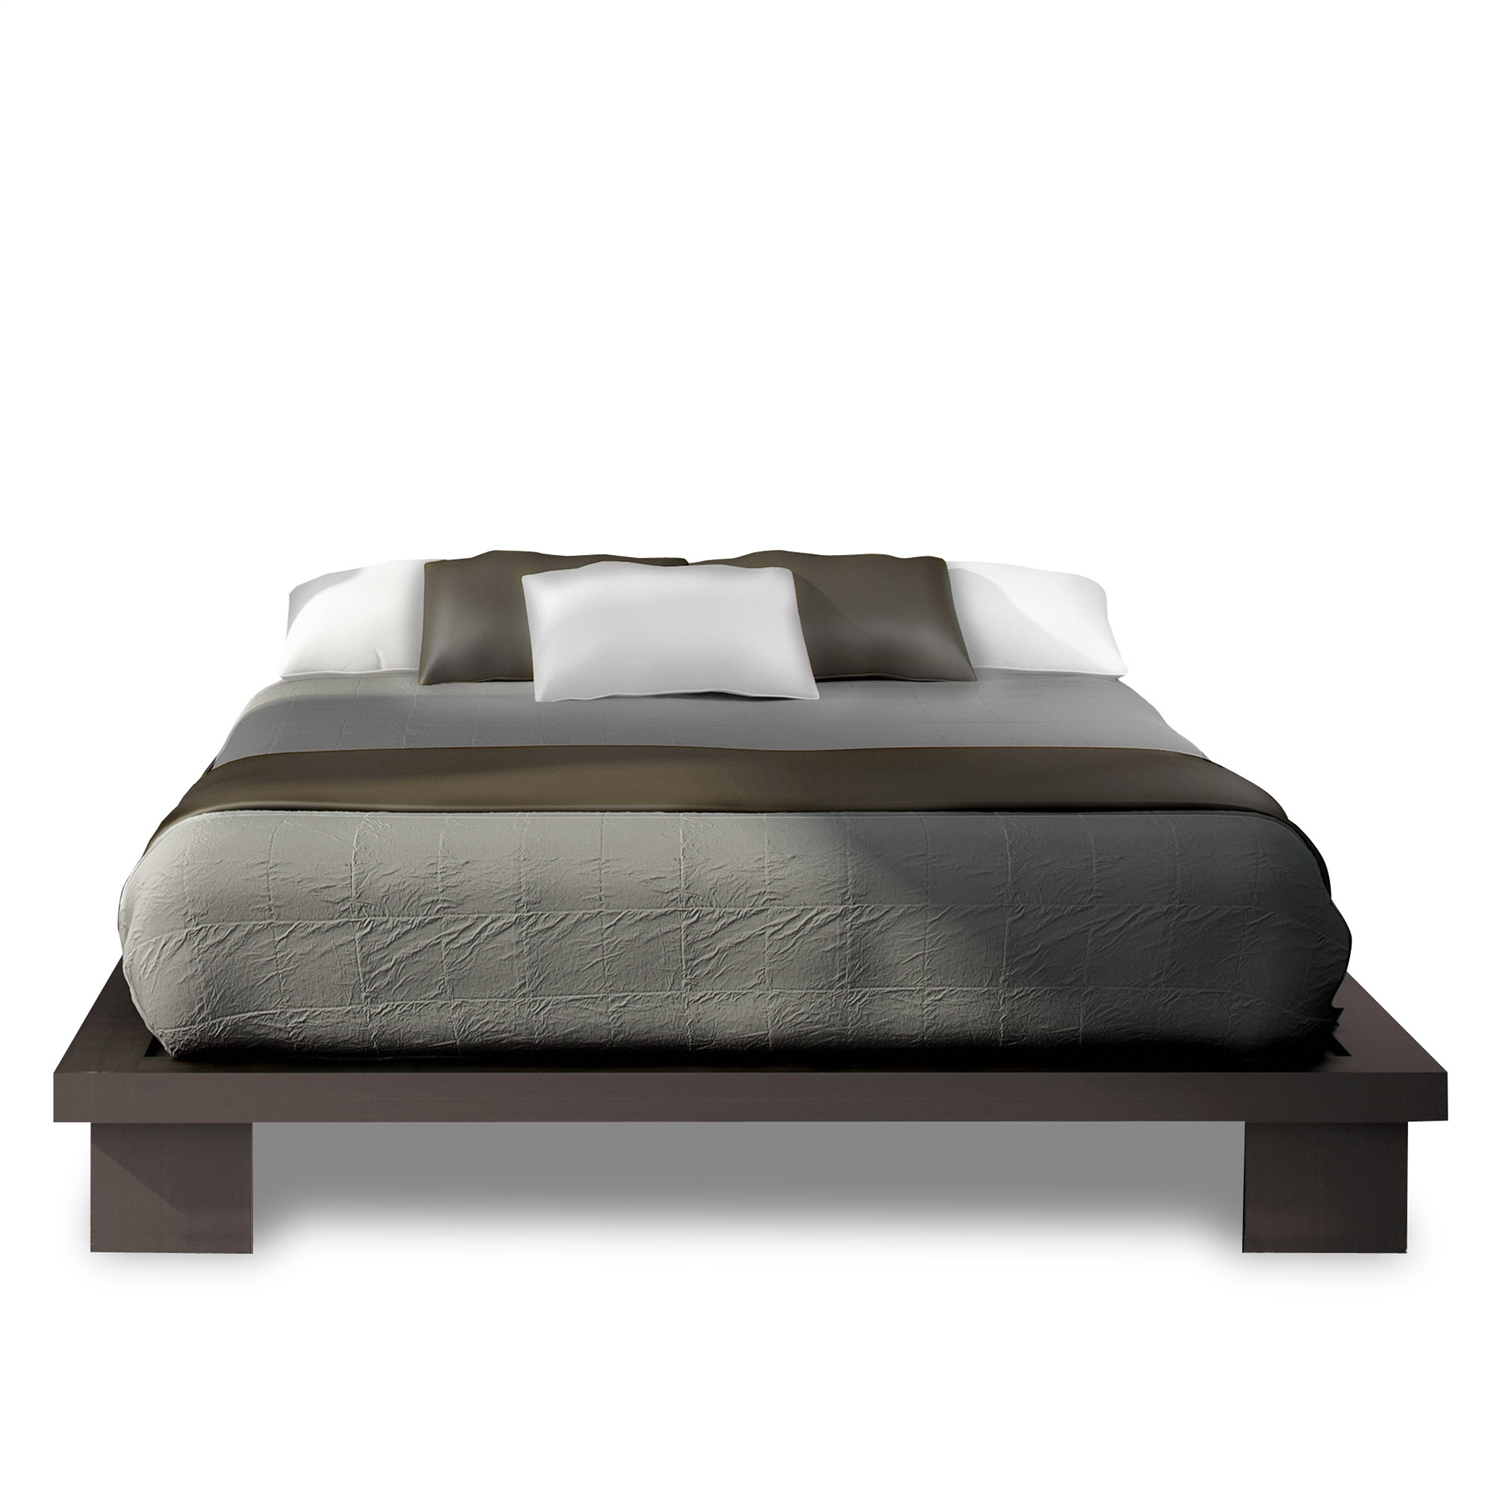 luxury bed queen size platform bed with gray color